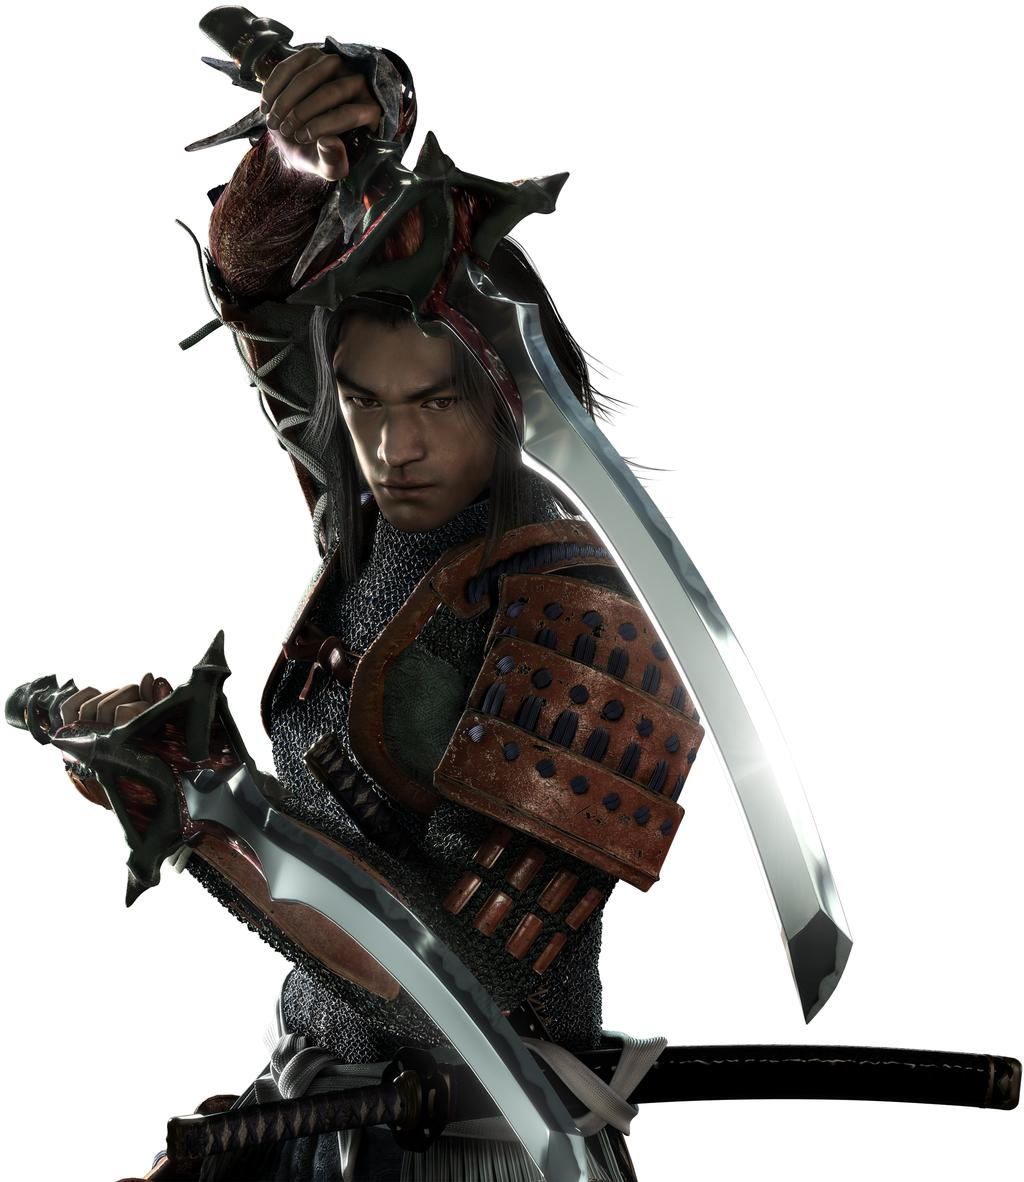 http://images.wikia.com/onimusha/images/d/d9/589770_20040129_screen030.jpg